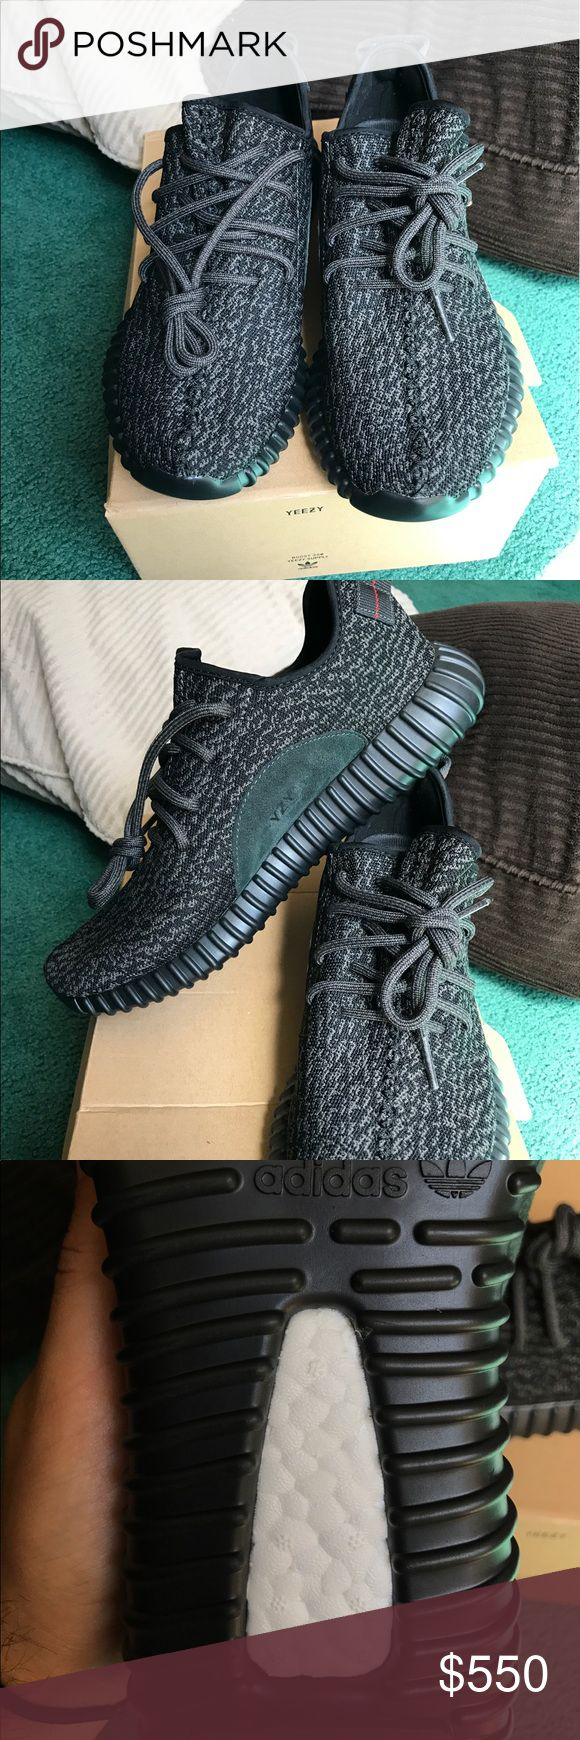 "YEEZY BOOST 350 ""PIRATE BLACK"" SIZE 10 1/2 YEEZY BOOST 350 ""PIRATE BLACK"". Im a shoe collecter and Been holding on to them for a while now. Never wore them before. I see a lot of fake yeezys on here so if you are skeptical message me and ill tell you how you can tell between real and fakes adidas Shoes Sneakers"